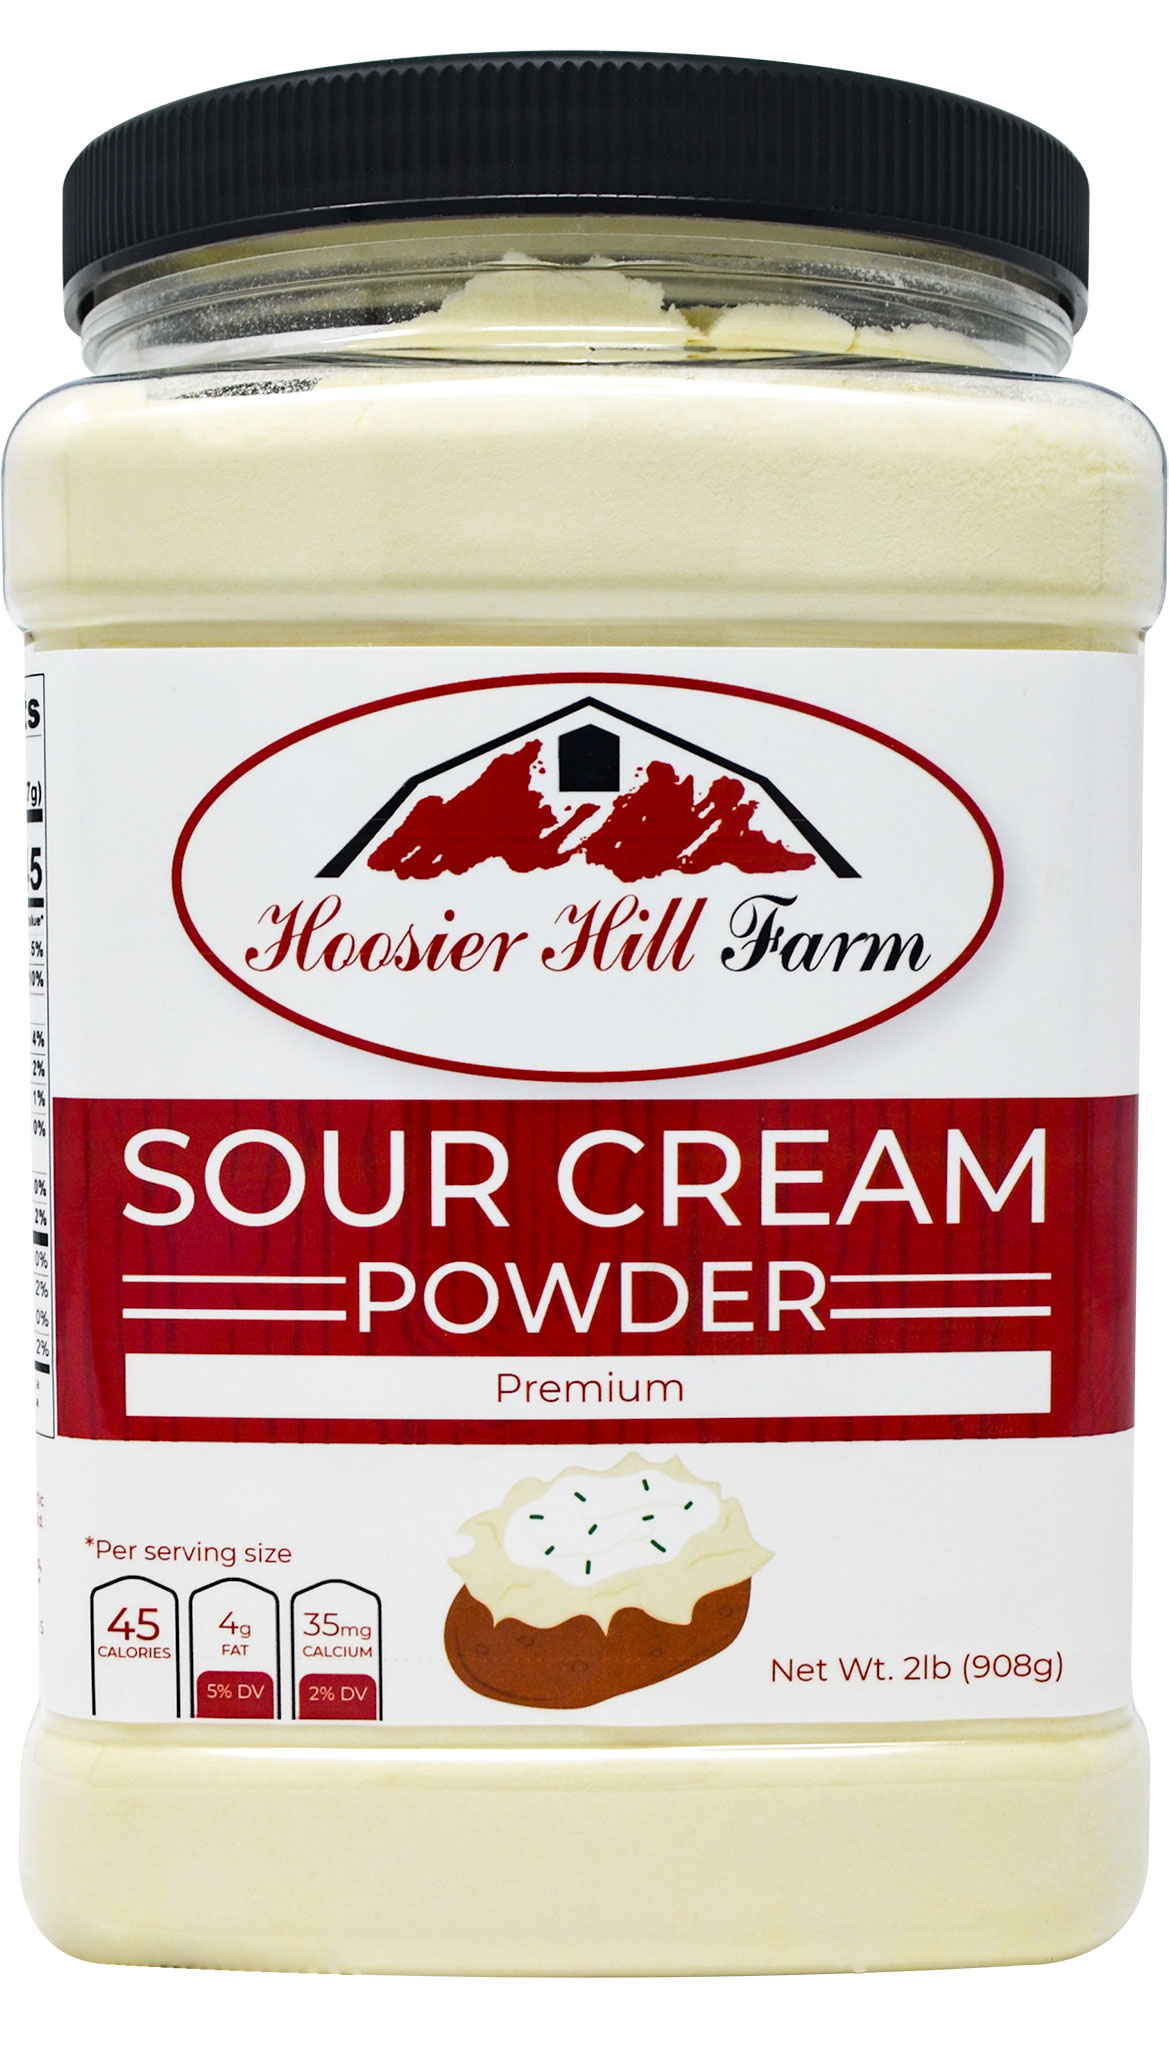 Hoosier Hill Farm Sour Cream Powder, 2 Lb